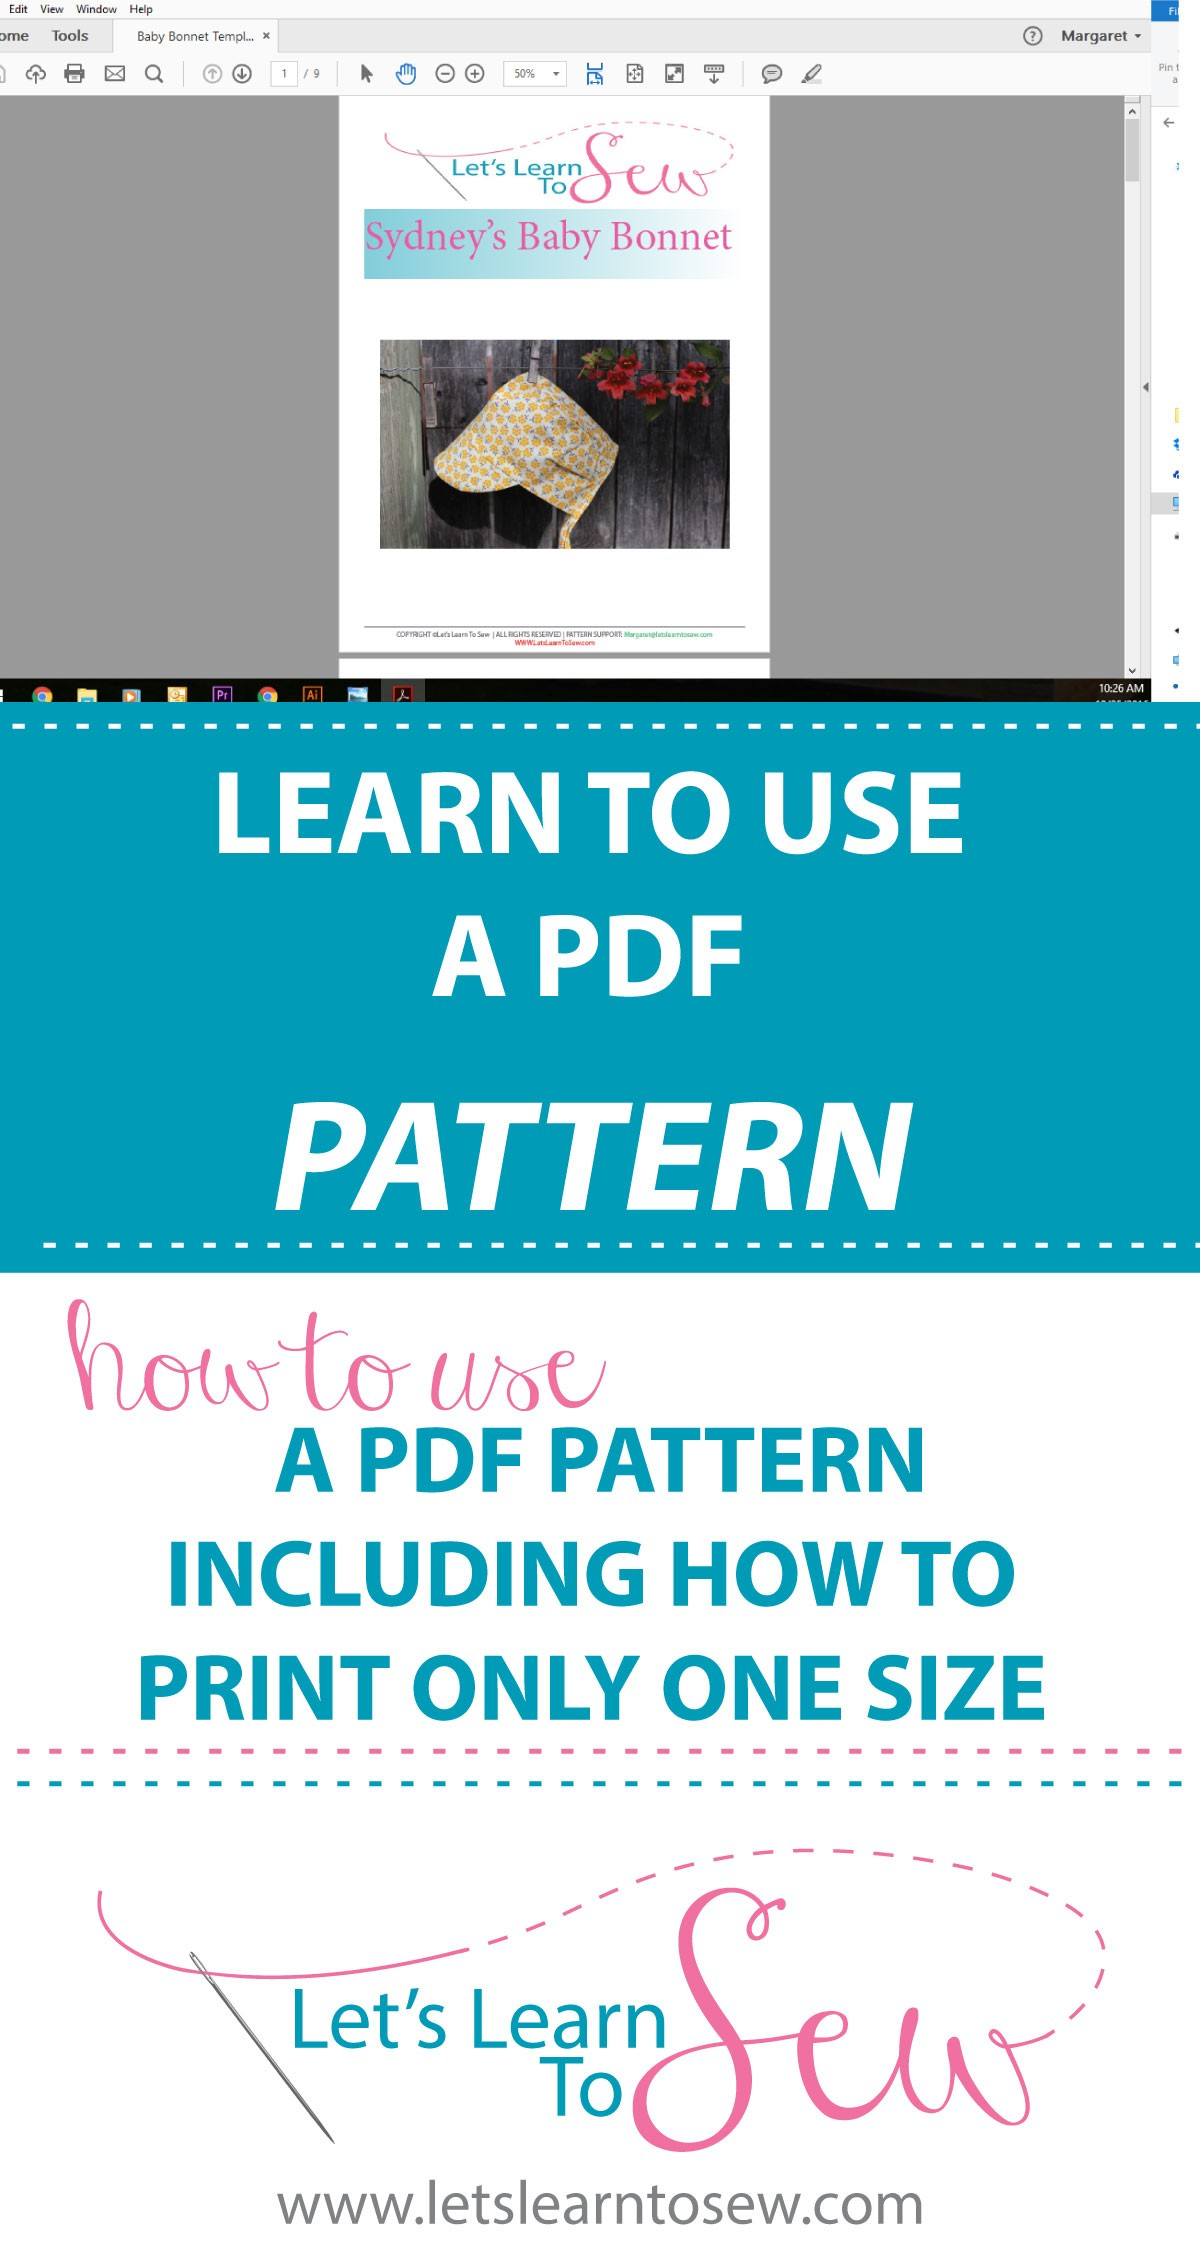 How to use a pdf pattern including how to print only one size